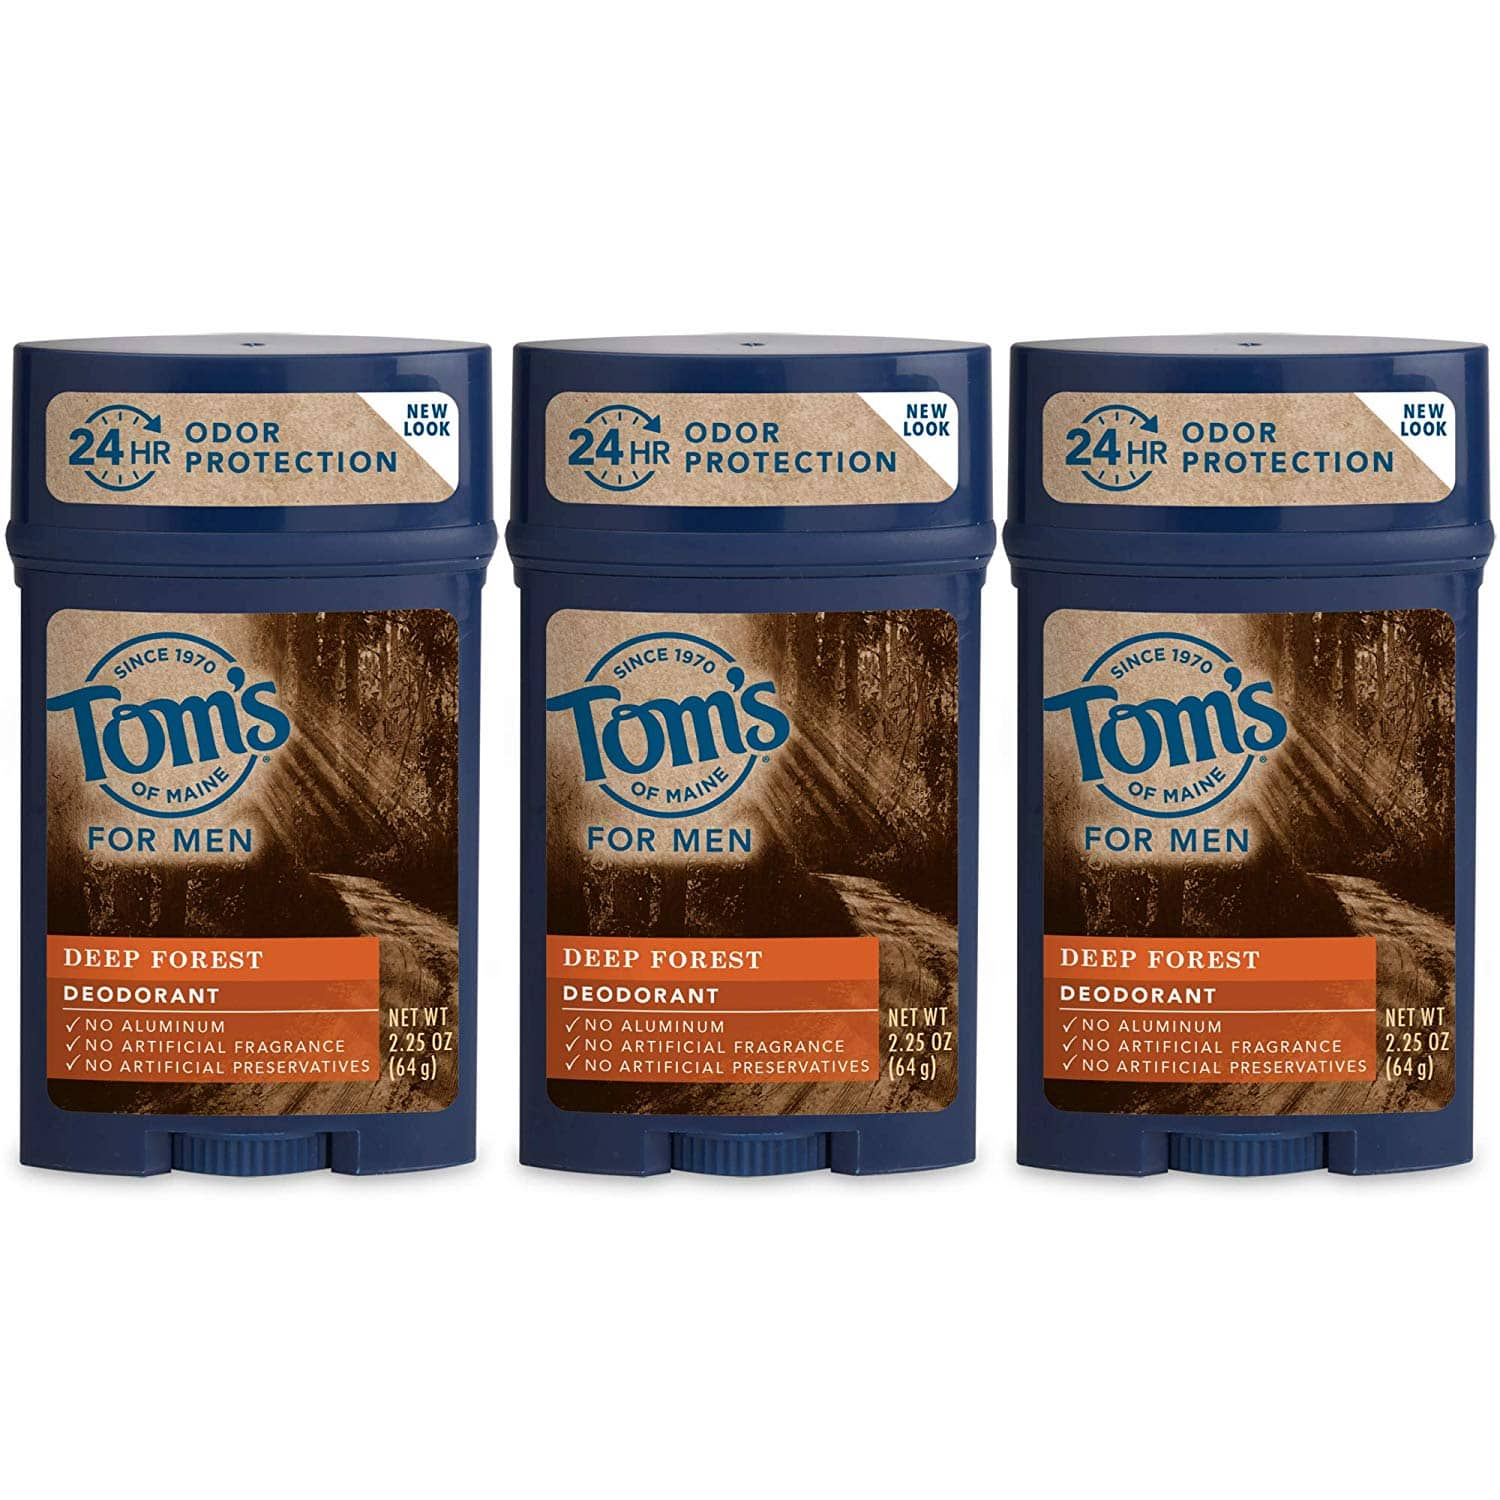 Tom's of Maine Natural Long Lasting Men's Deodorant Stick, Deep Forest, 2.25 Ounce, Pack of 3 [Deep Forest] $6.16